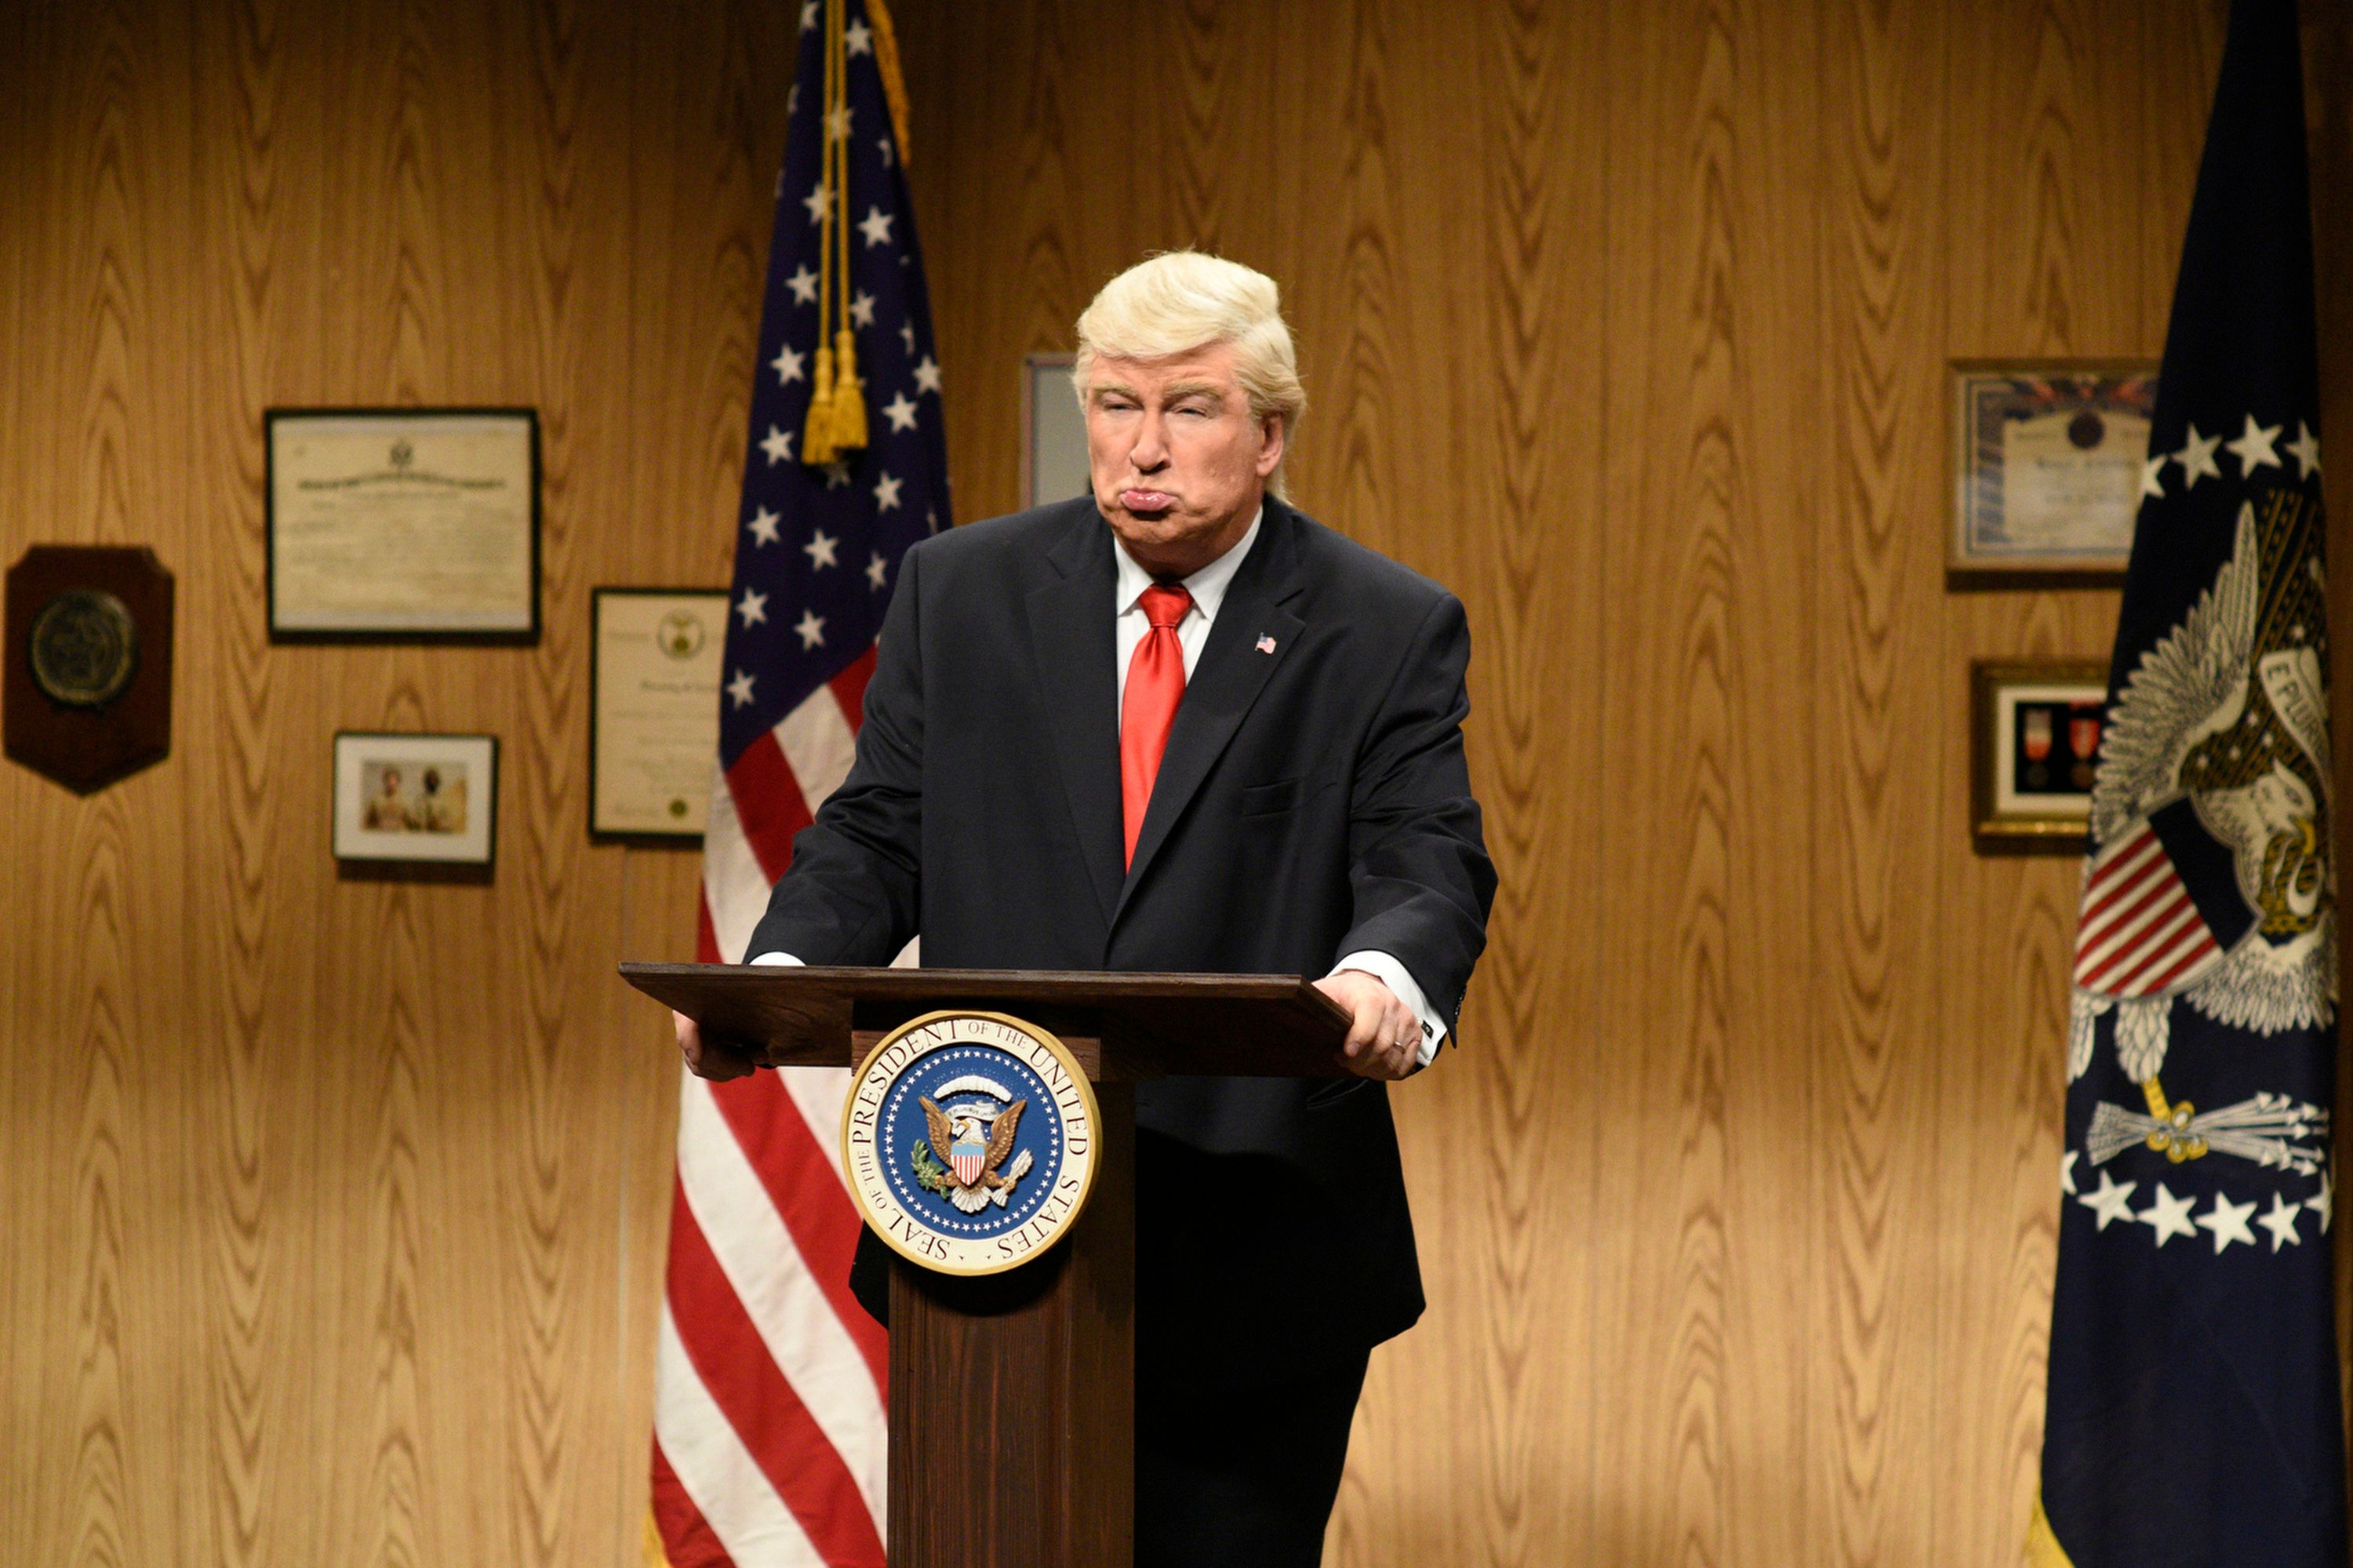 SATURDAY NIGHT LIVE -- 'Louis C.K.' Episode 1721 -- Pictured: (l-r) Alec Baldwin as President Donald Trump during the 'Trump People's Cold Open' on April 8, 2017 -- (Photo by: Will Heath/NBC/NBCU Photo Bank via Getty Images)